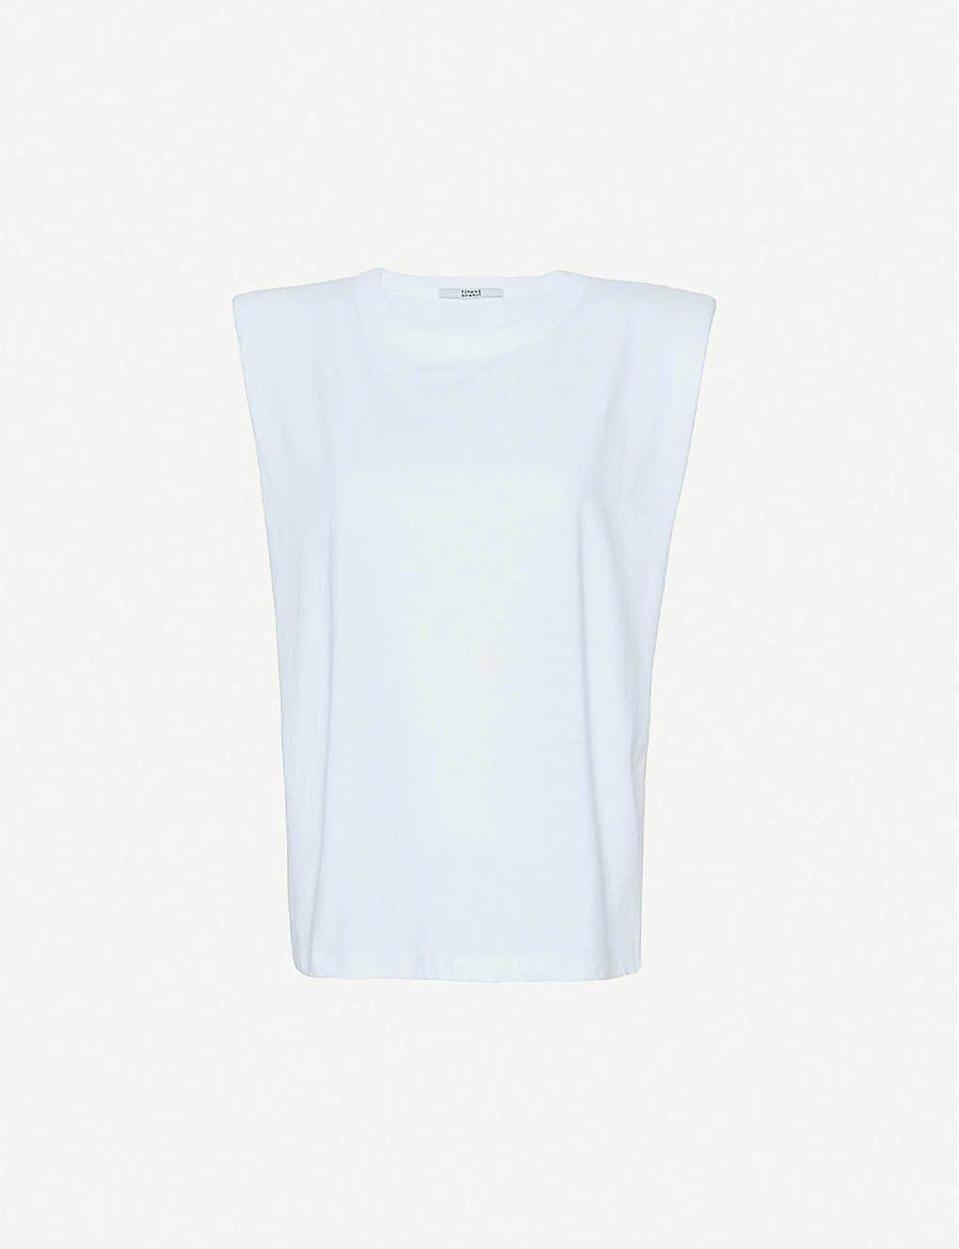 """<p><a class=""""link rapid-noclick-resp"""" href=""""https://go.redirectingat.com?id=127X1599956&url=https%3A%2F%2Fwww.selfridges.com%2FGB%2Fen%2Fcat%2Ffrankie-shop-eva-padded-cotton-jersey-top_R01466411%2F%3FpreviewAttribute%3DWHITE&sref=https%3A%2F%2Fwww.harpersbazaar.com%2Fuk%2Ffashion%2Fwhat-to-wear%2Fg27282427%2Fbest-white-t-shirt-women%2F"""" rel=""""nofollow noopener"""" target=""""_blank"""" data-ylk=""""slk:SHOP NOW"""">SHOP NOW</a><br></p><p>The Frankie Shop's Eva T-shirt kick started fashion's obsession with '80s-inspired basics and shoulder pads. It's nearing cult status, actually, since the brand has barely been able to keep it in stock for the past year. It's finally back for AW20 alongside some new colourways, but the white is our favourite due to its versatility.</p><p>Eva padded cotton-jersey top, £75, The Frankie Shop</p>"""